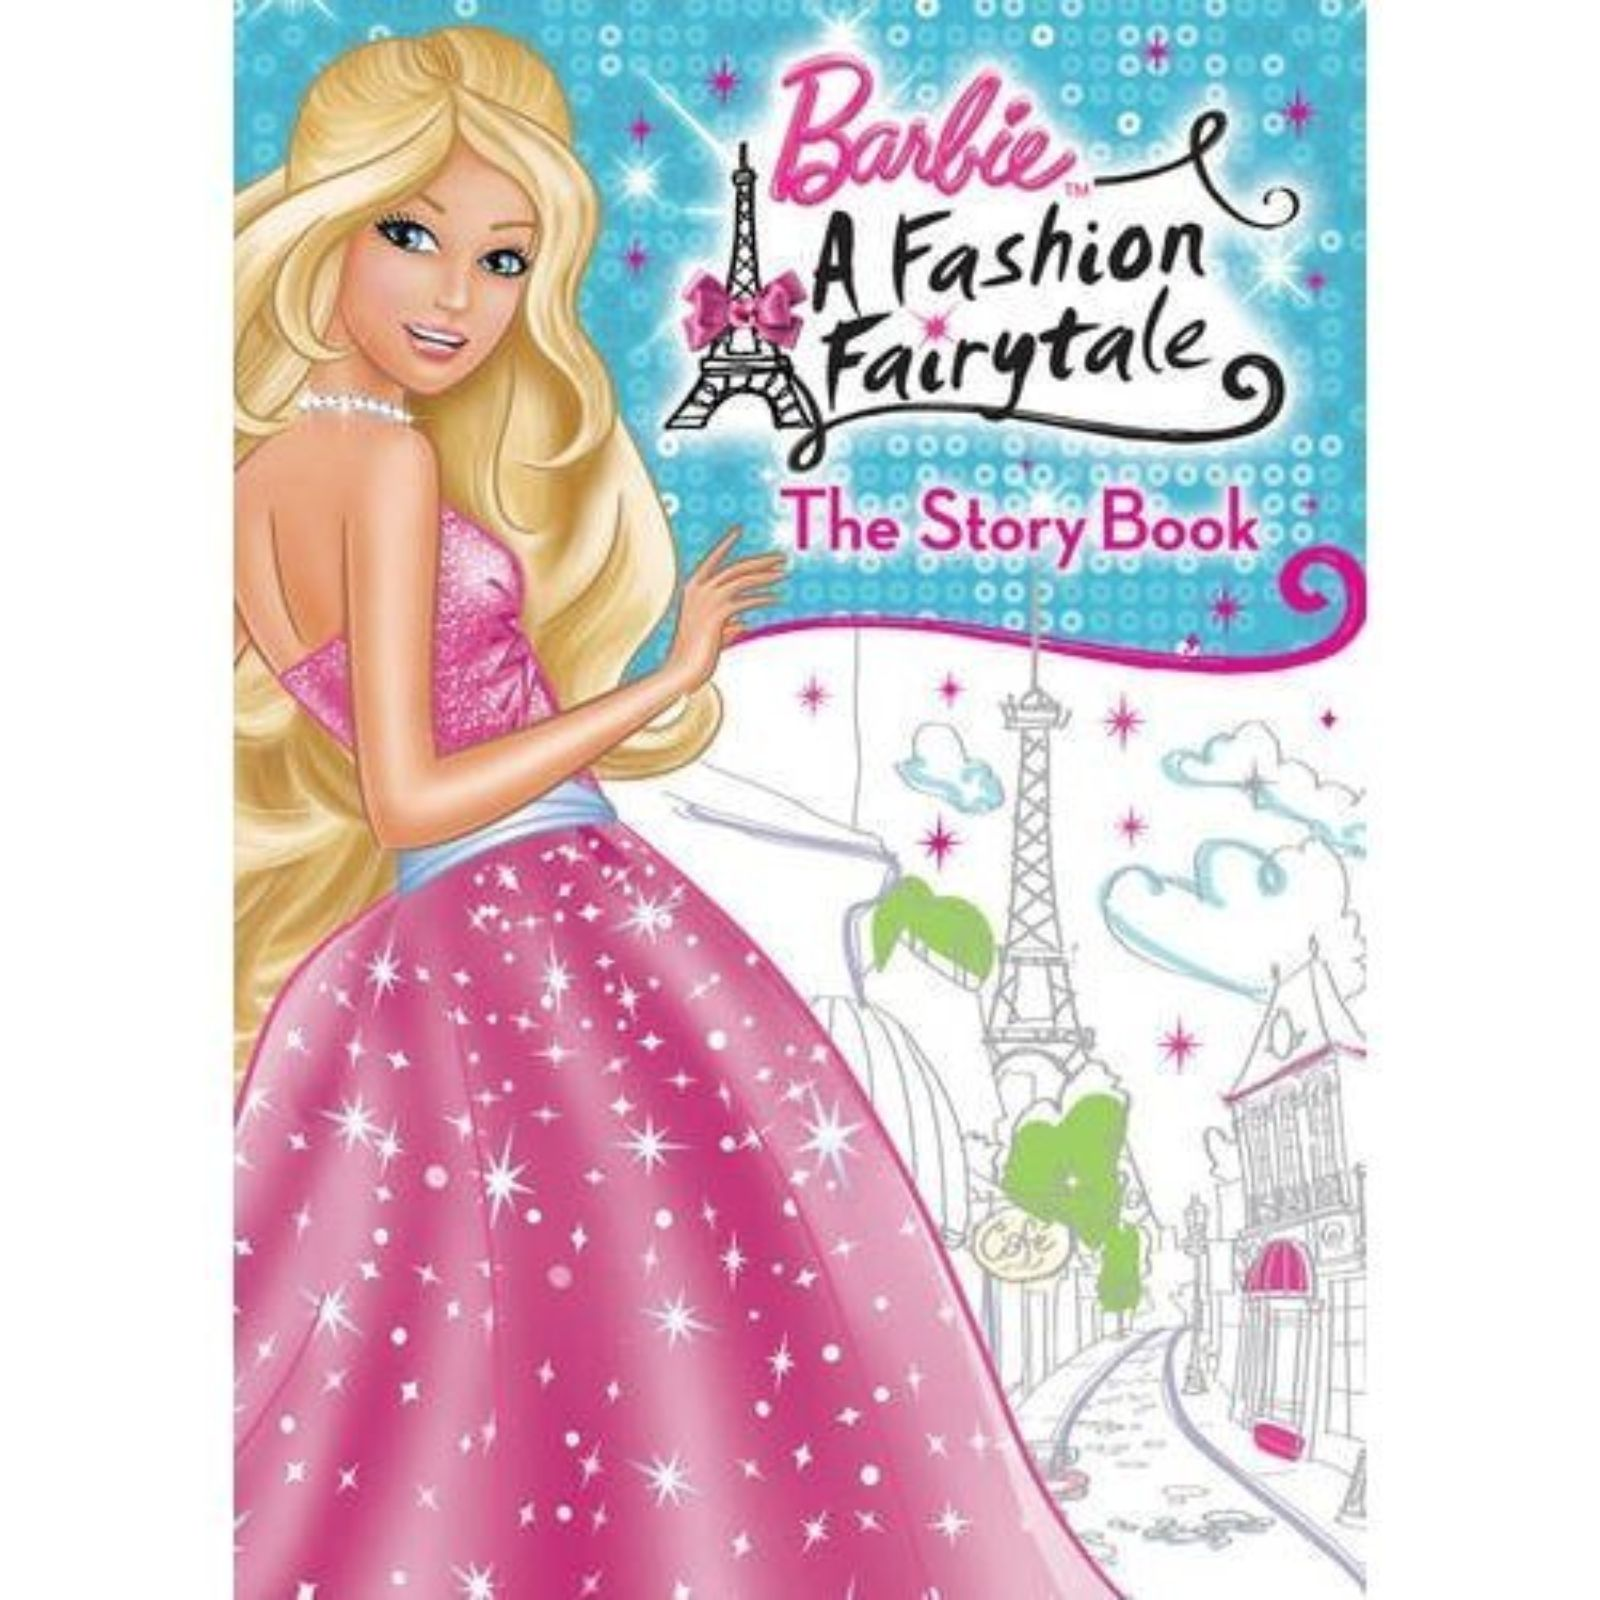 Barbie a fashion fairytale games for girls 88